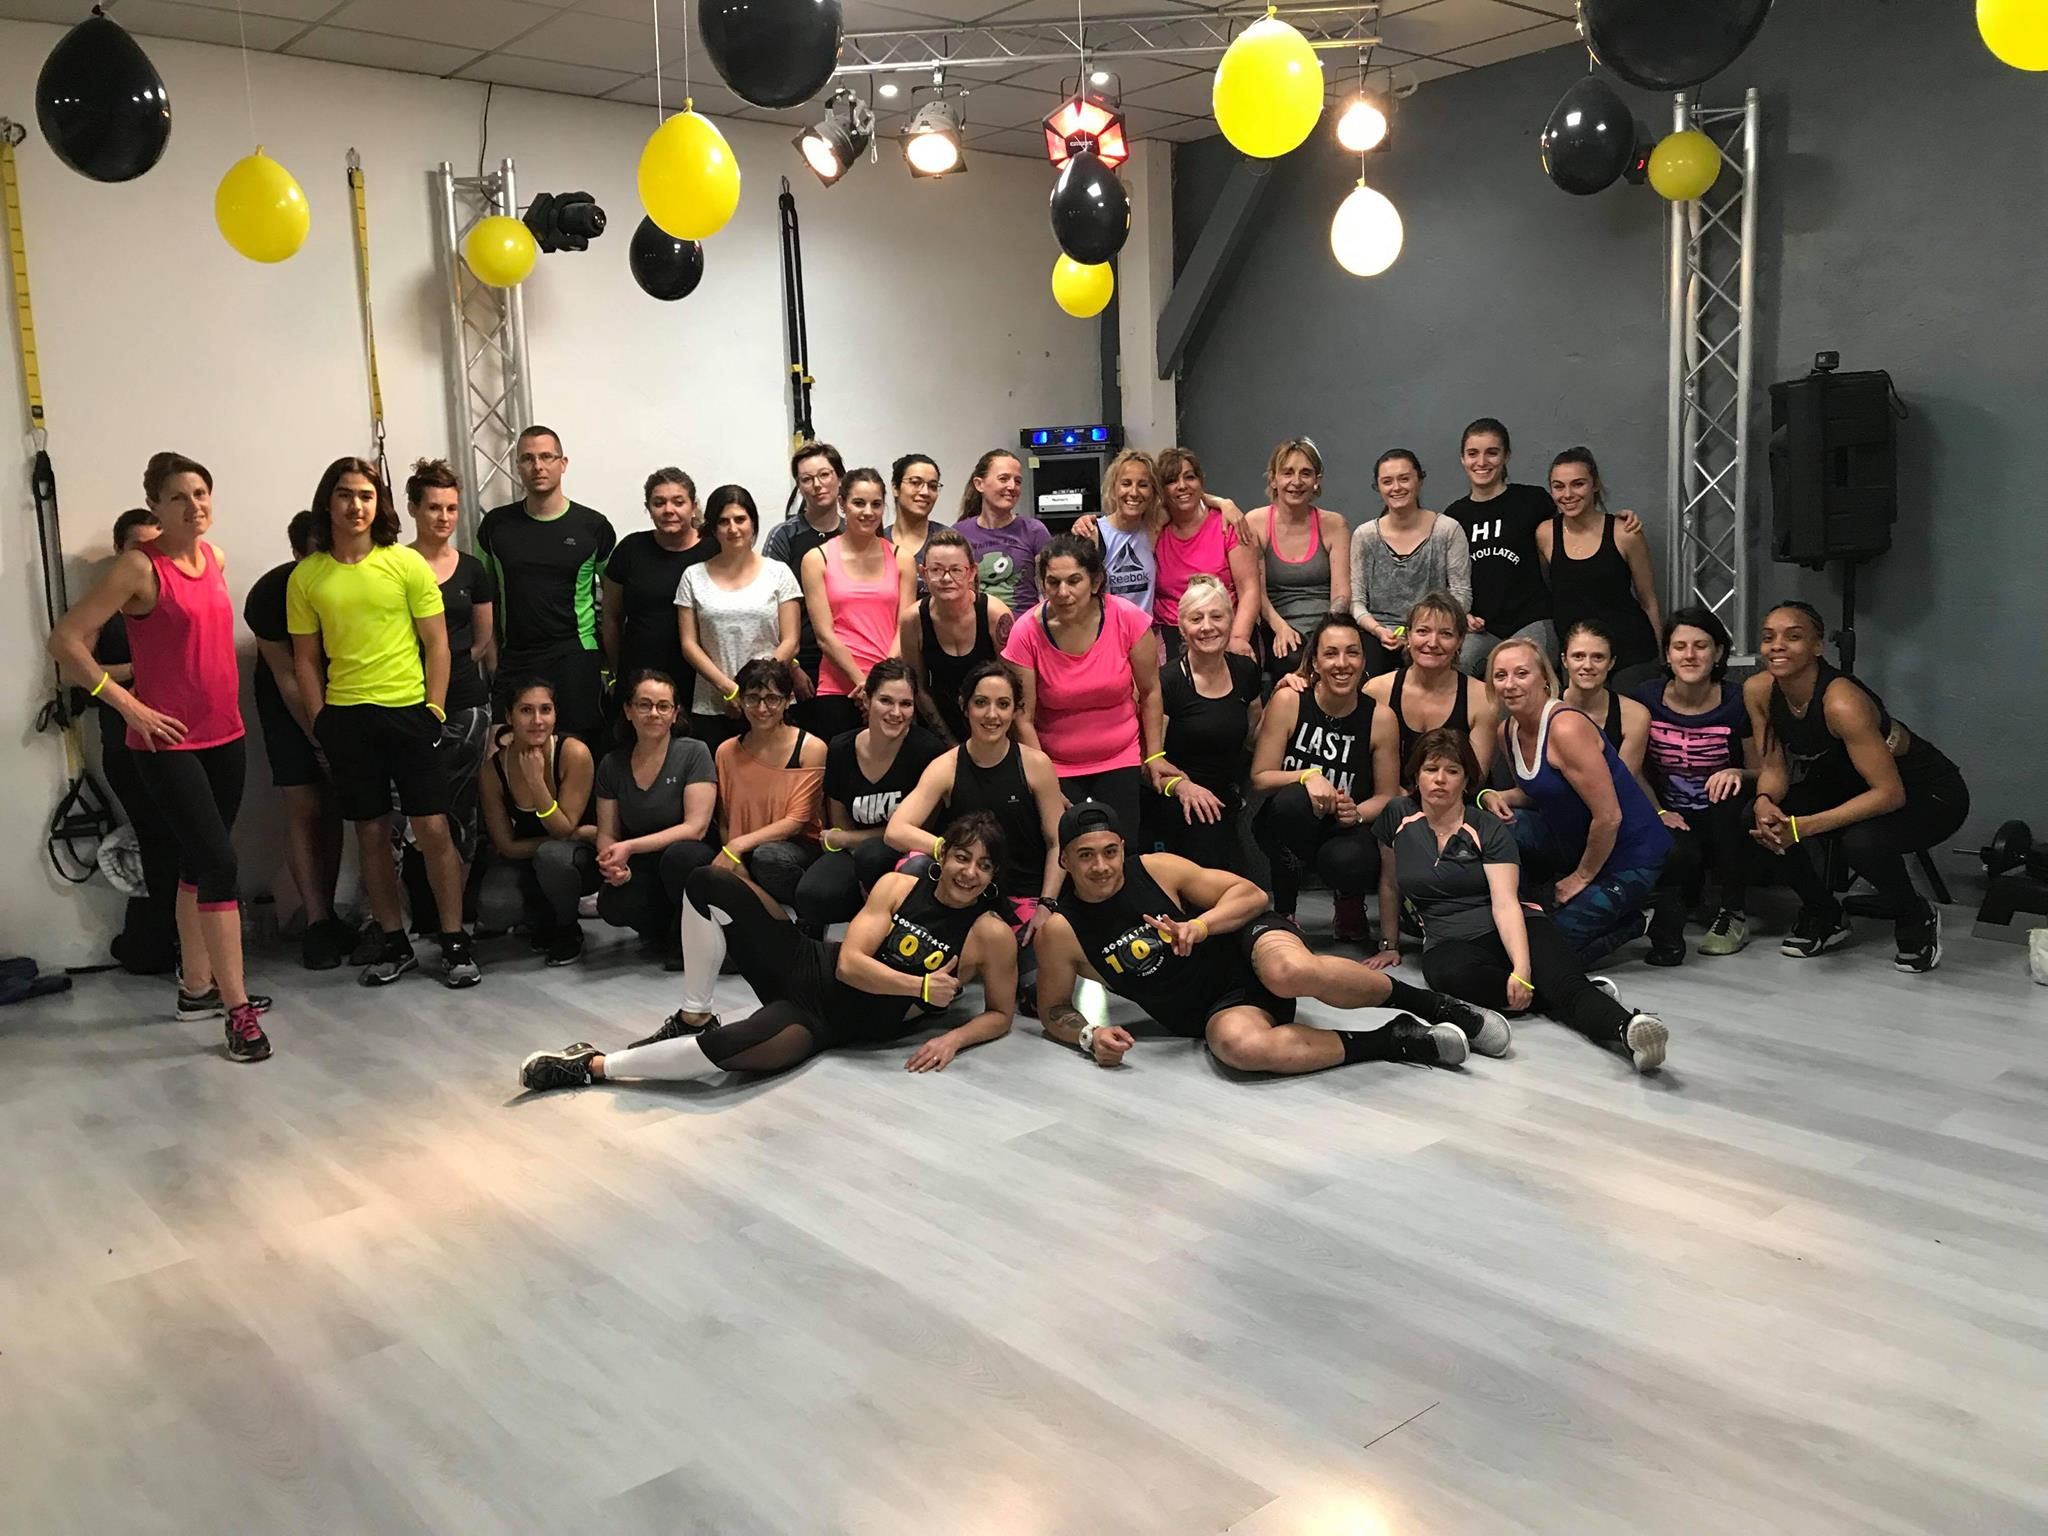 Marseille Fitness Lifeclub